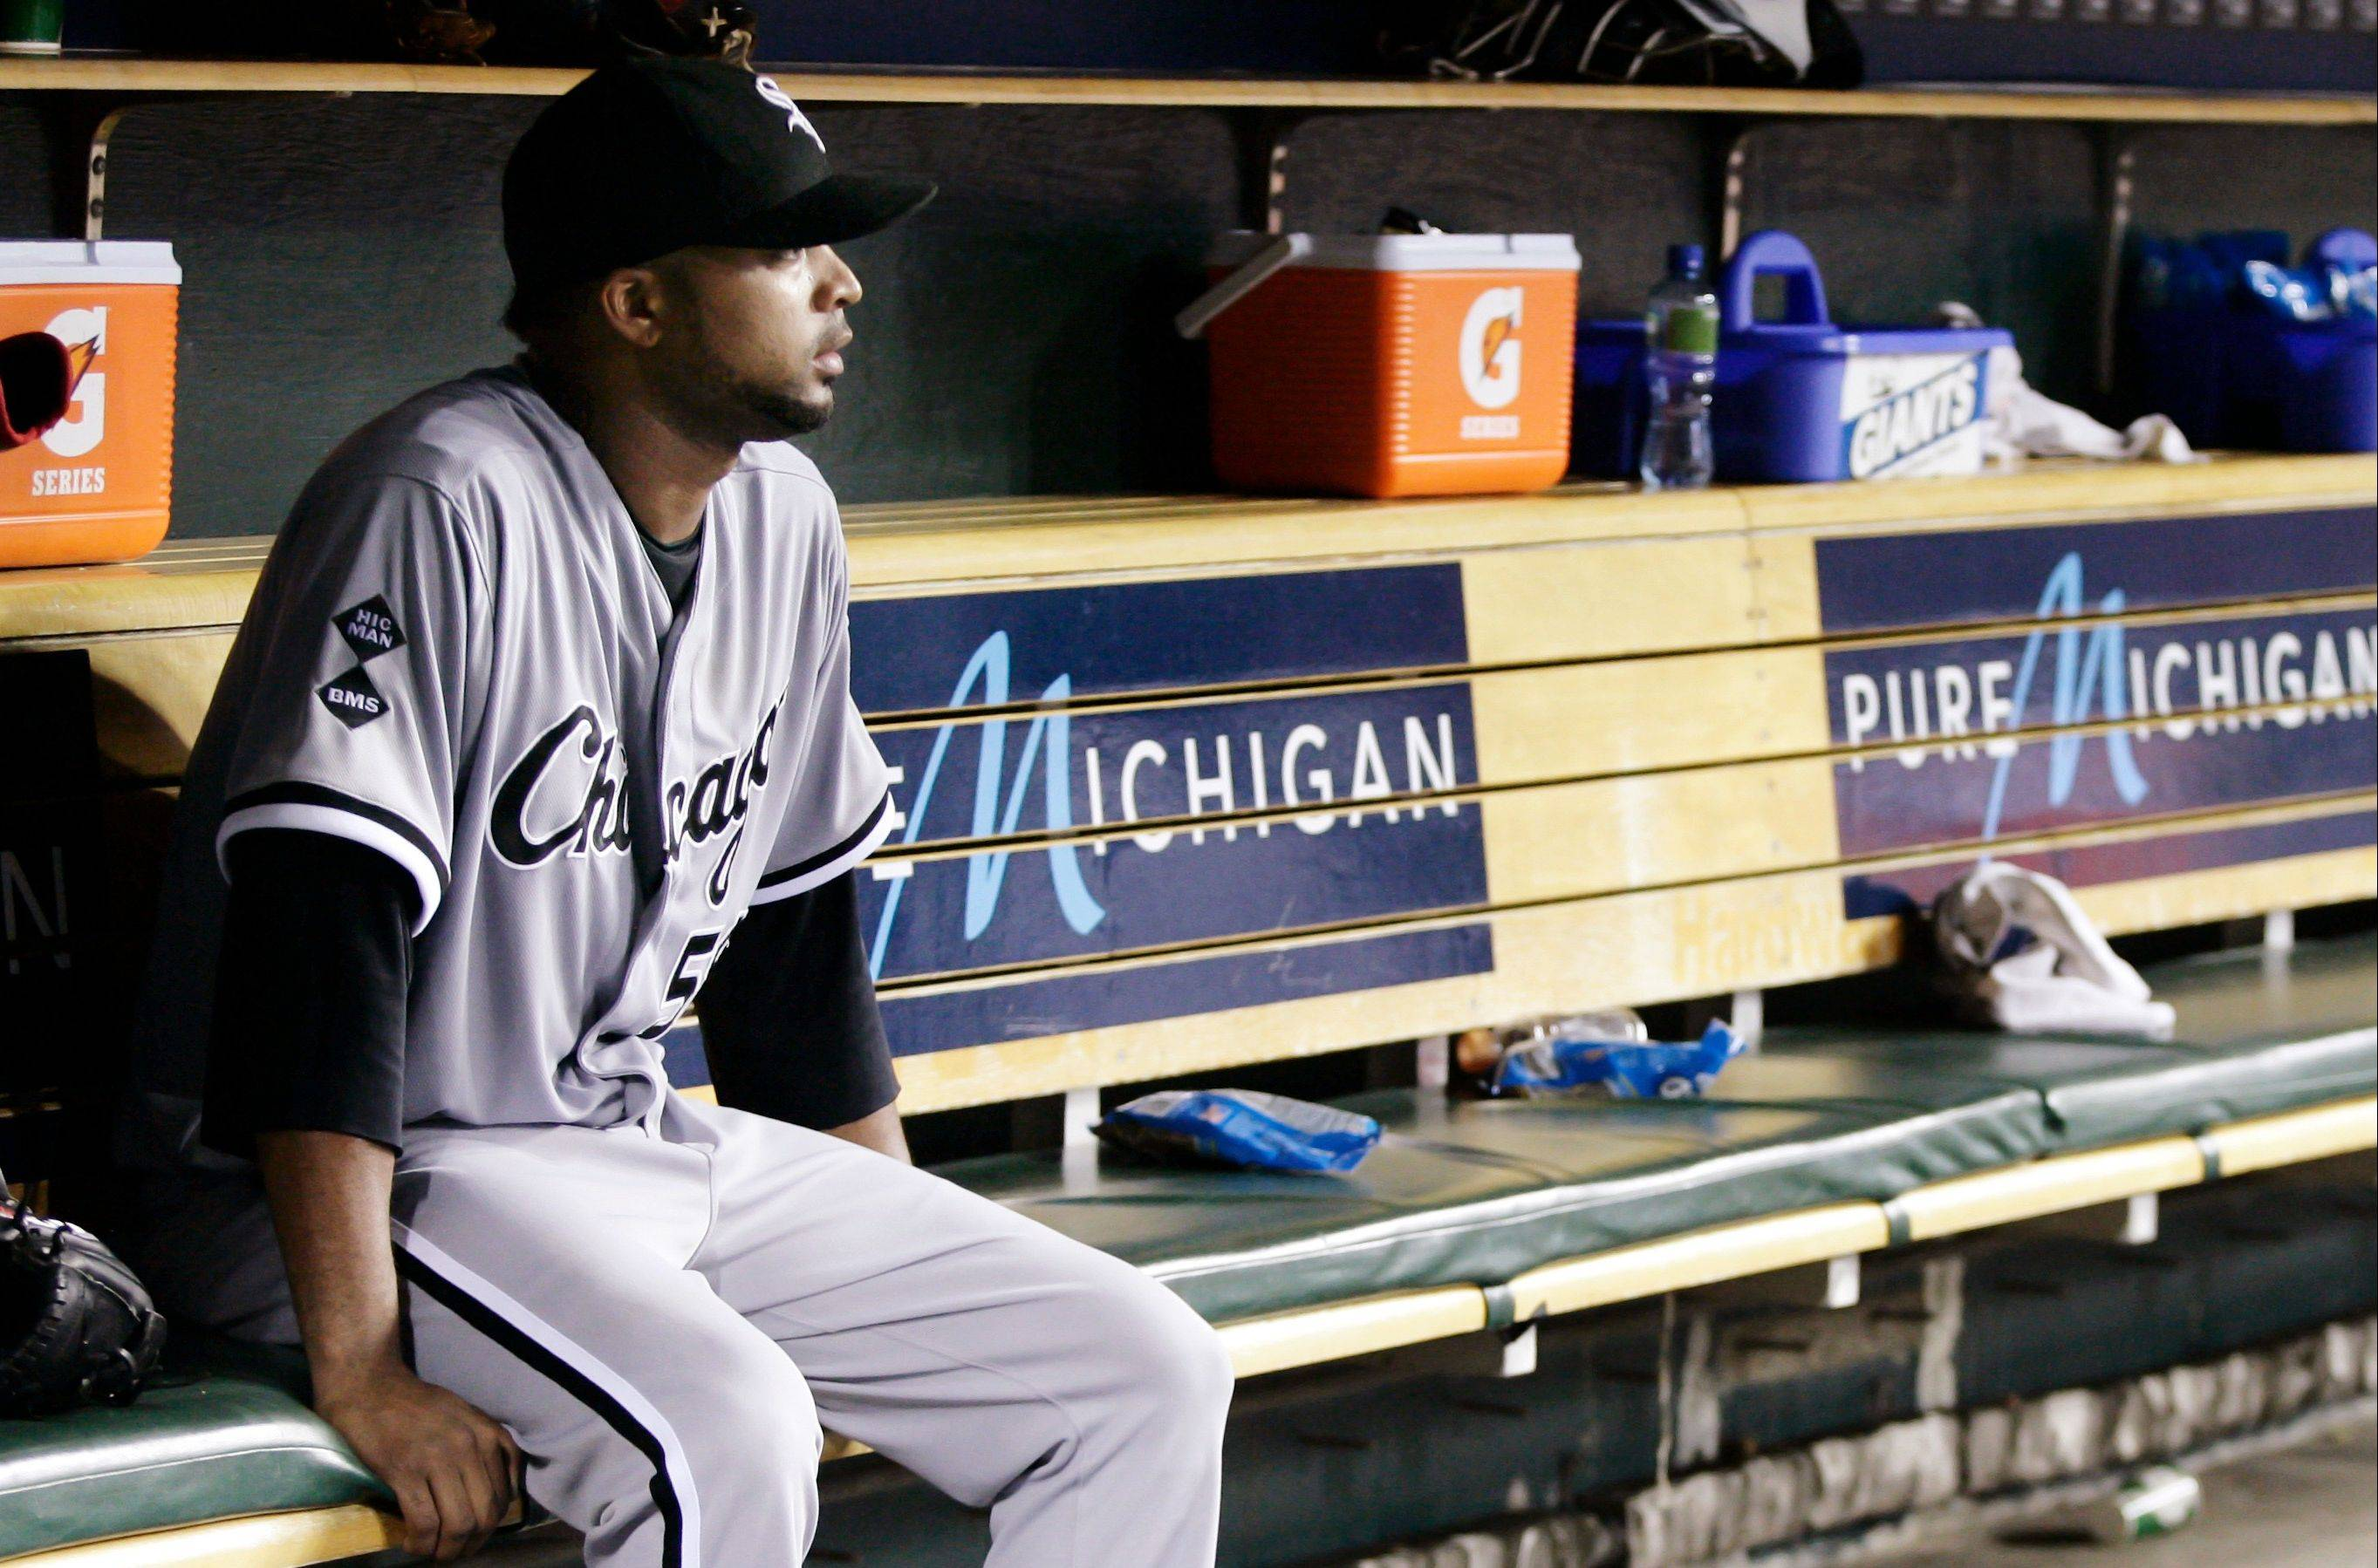 White Sox starter Francisco Liriano reflects on his rough outing Saturday against the Tigers in Detroit. Liriano dropped to 5-1l after working 4 innings, allowing 3 runs on 4 hits with 7 walks.